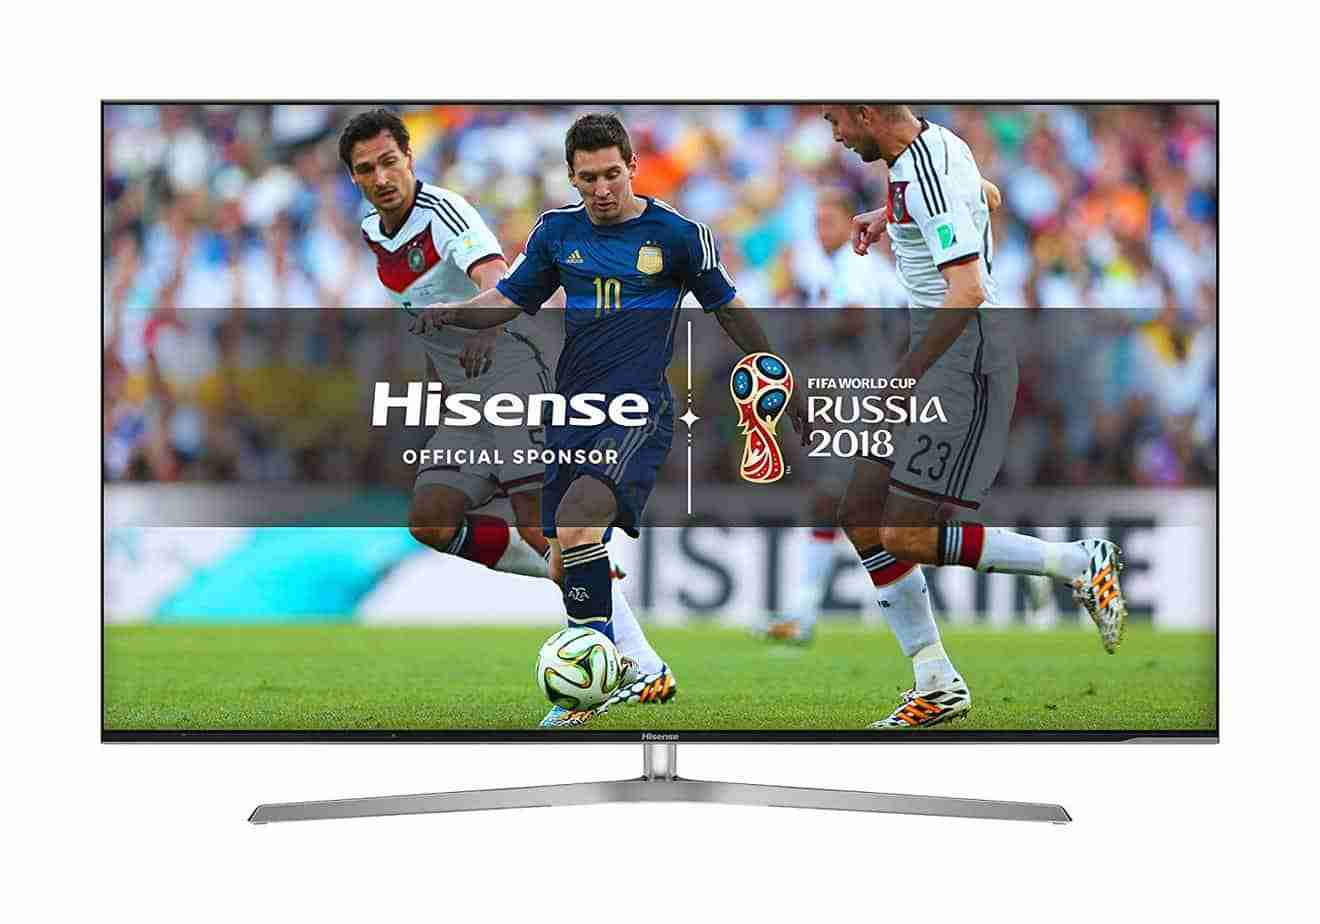 Hisense U7A 4K Ultra HD ULED Smart TV Amazon UK HDR 2018